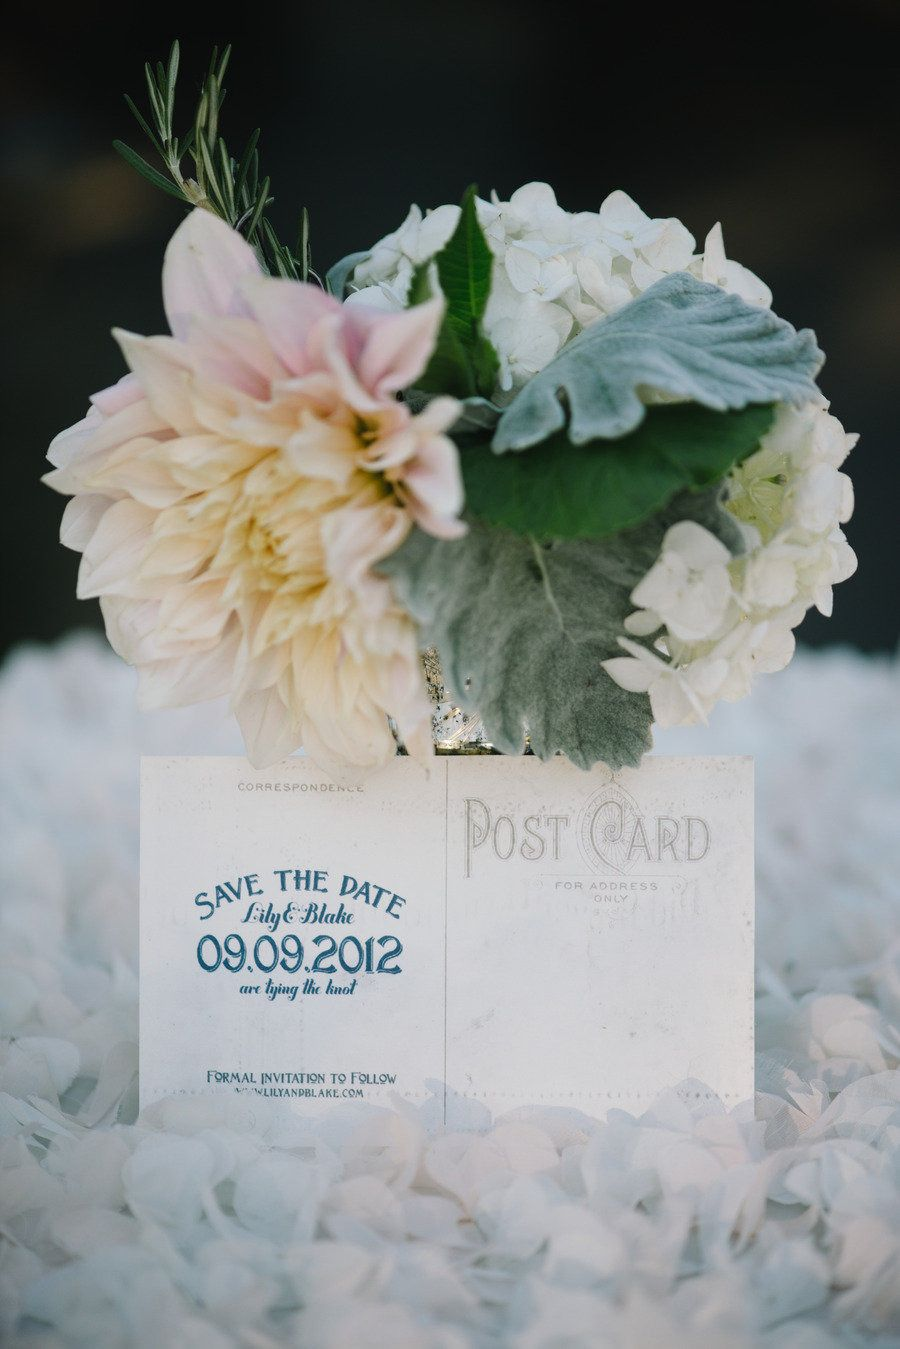 #save-the-date  Photography: Delbarr Moradi Photography - delbarrmoradi.com Planning: Soiree by Simone Lennon - soireebysimone.com Floral Design: Fleurs Du Soleil - kimenglandflowers.com  Read More: http://www.stylemepretty.com/2013/02/25/carmel-valley-wedding-from-delbarr-moradi-simone-lennon/